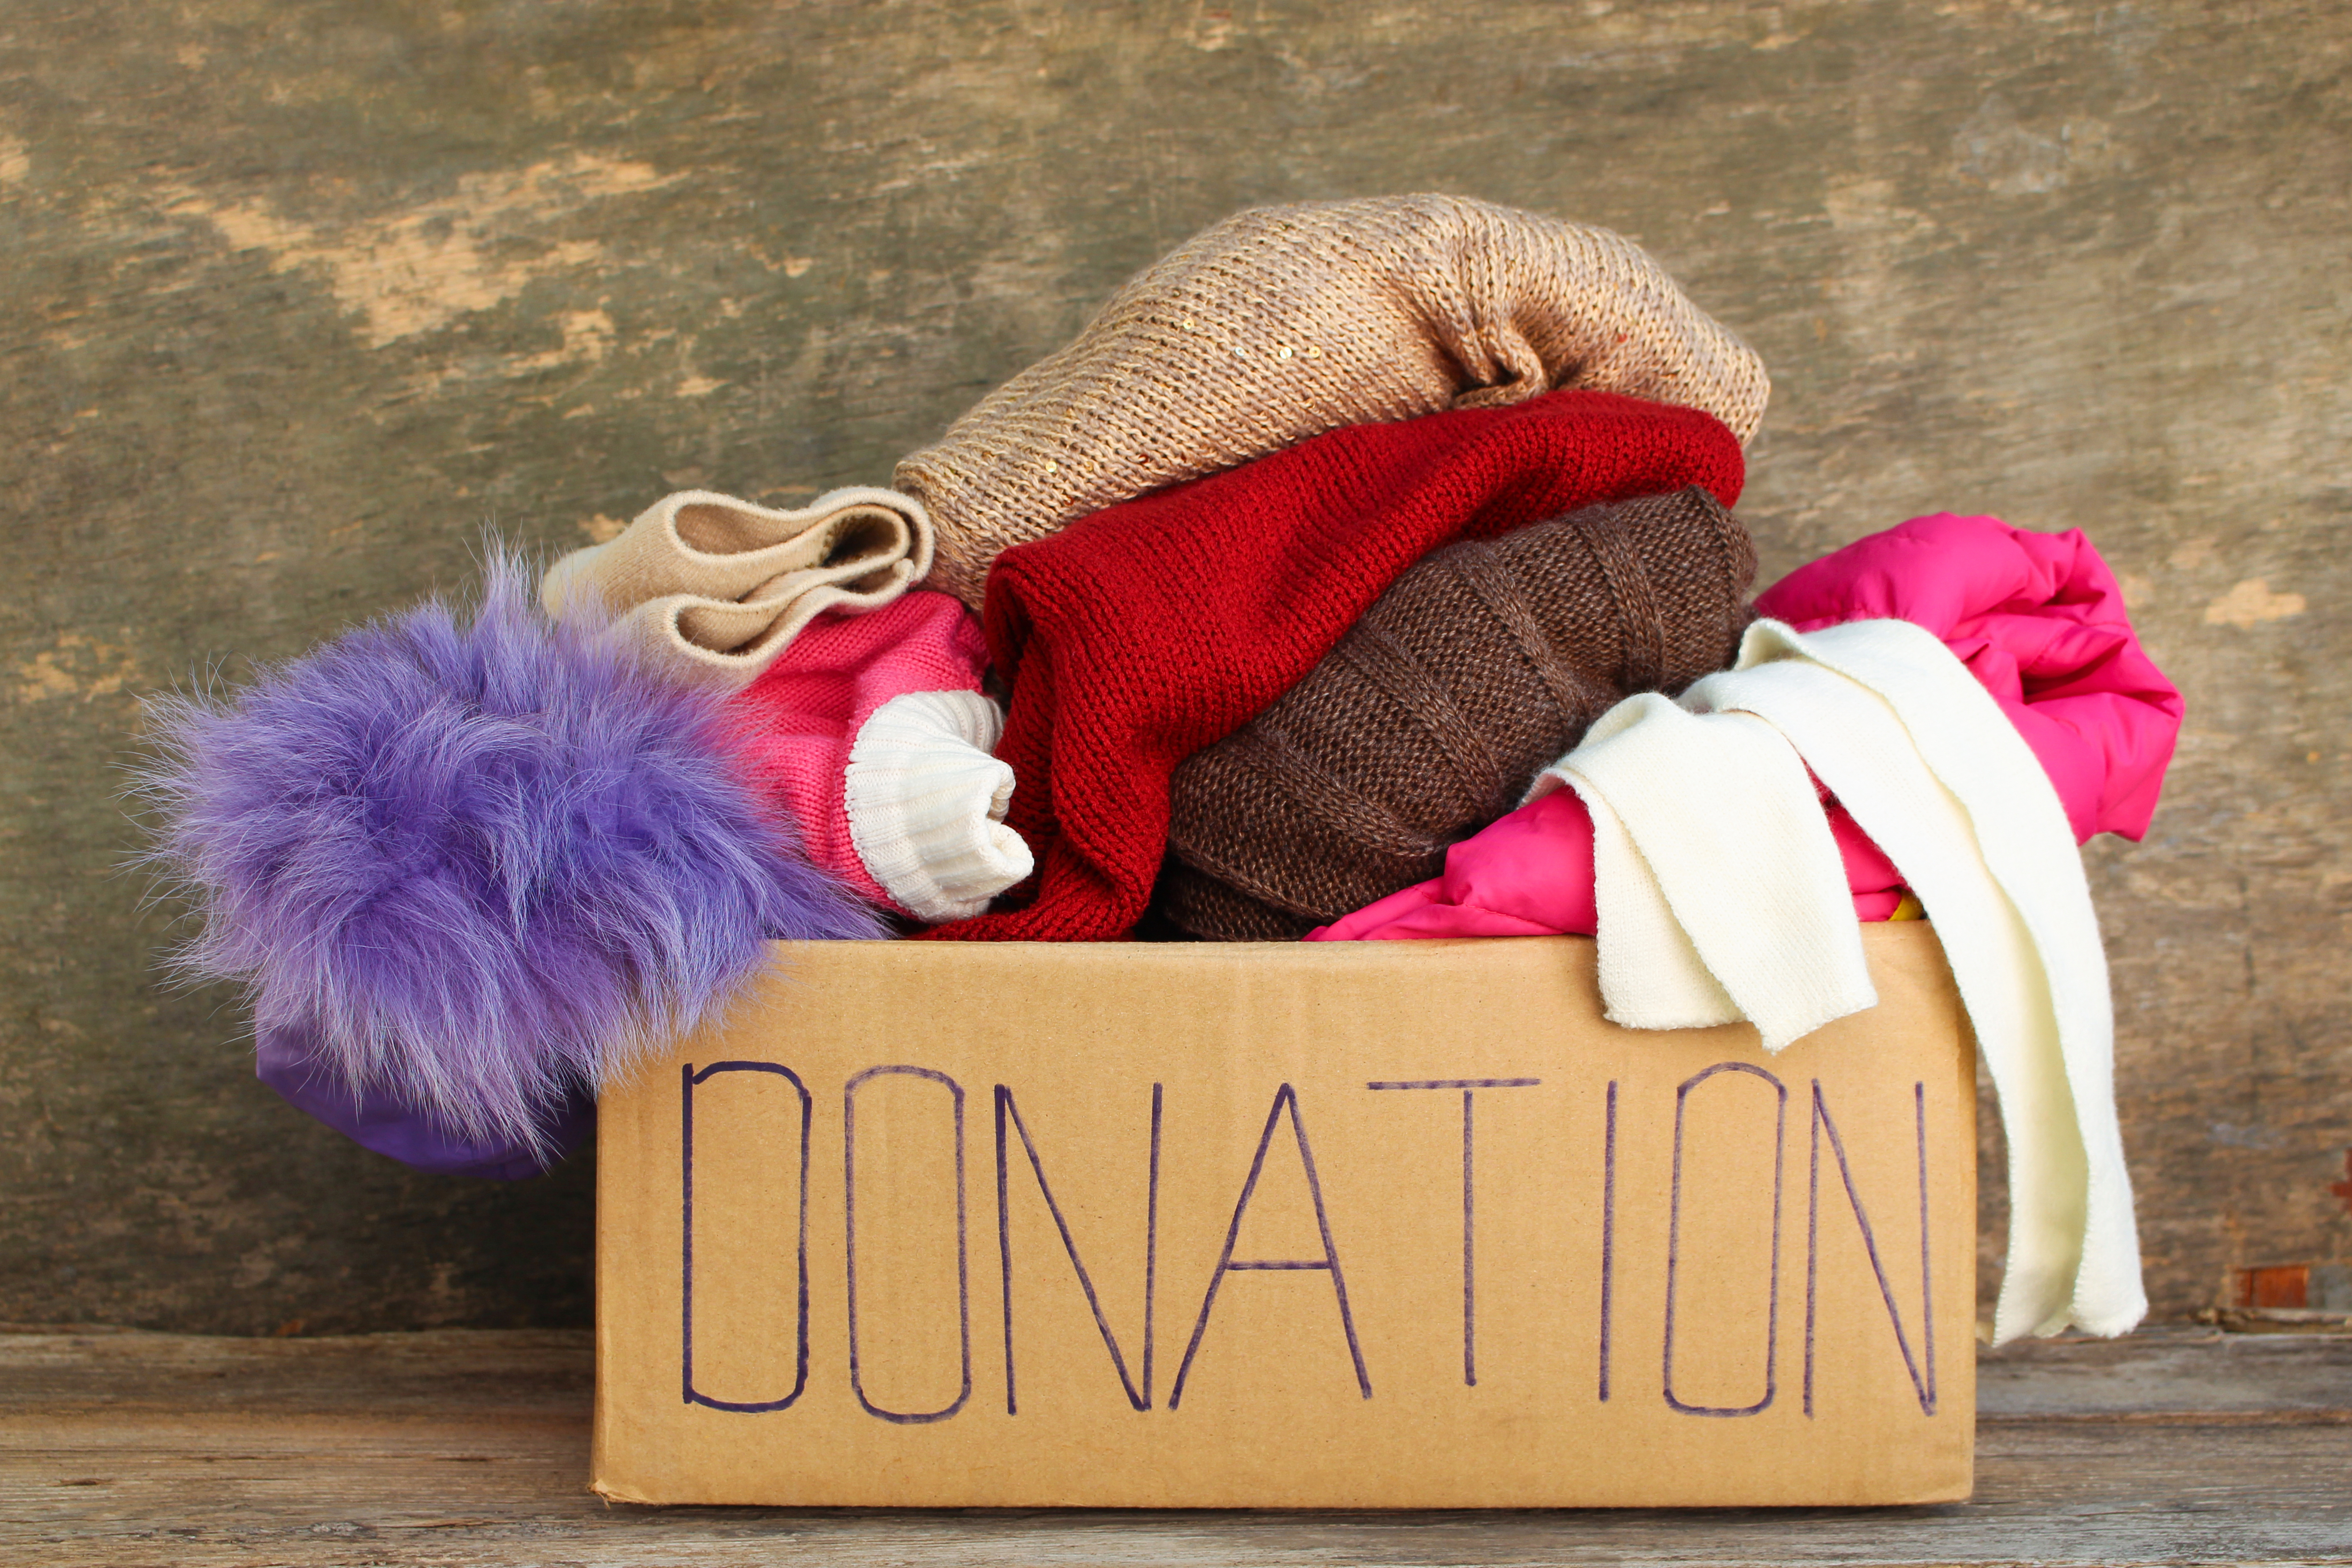 5 ways to help others this wintertime